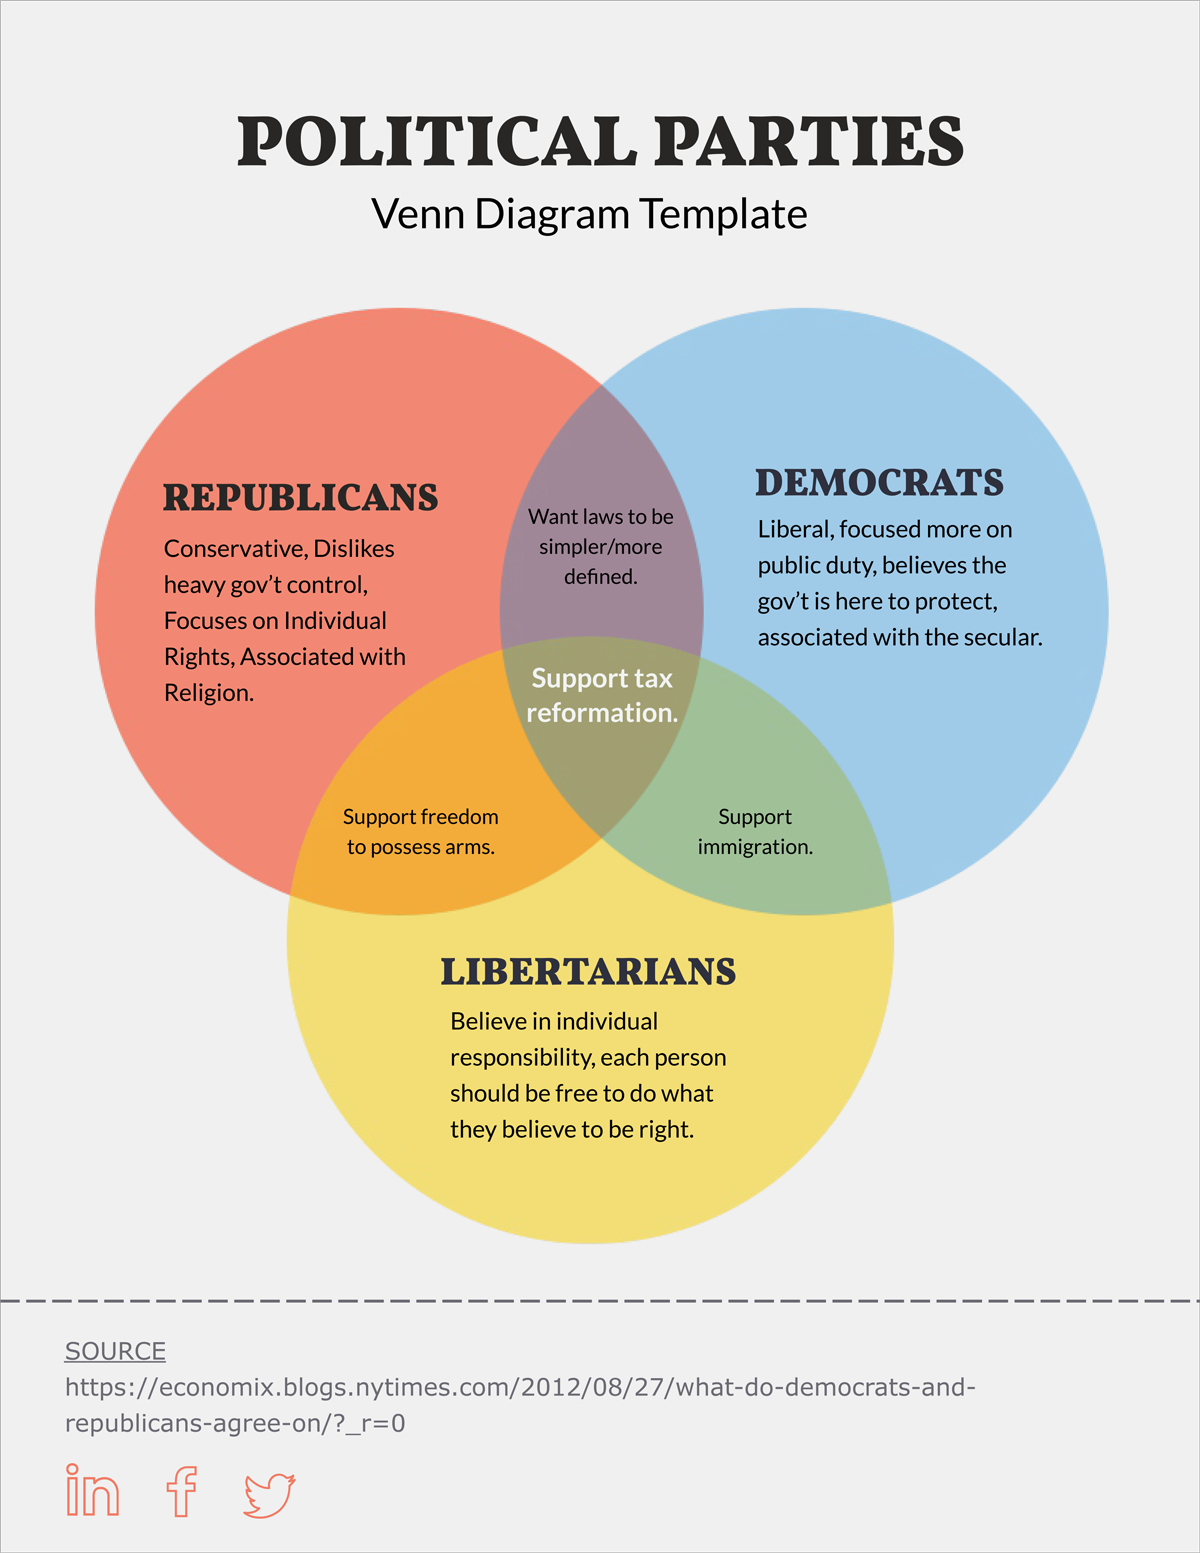 Free venn diagram template edit online and download visual political parties three circle venn diagram template pooptronica Choice Image